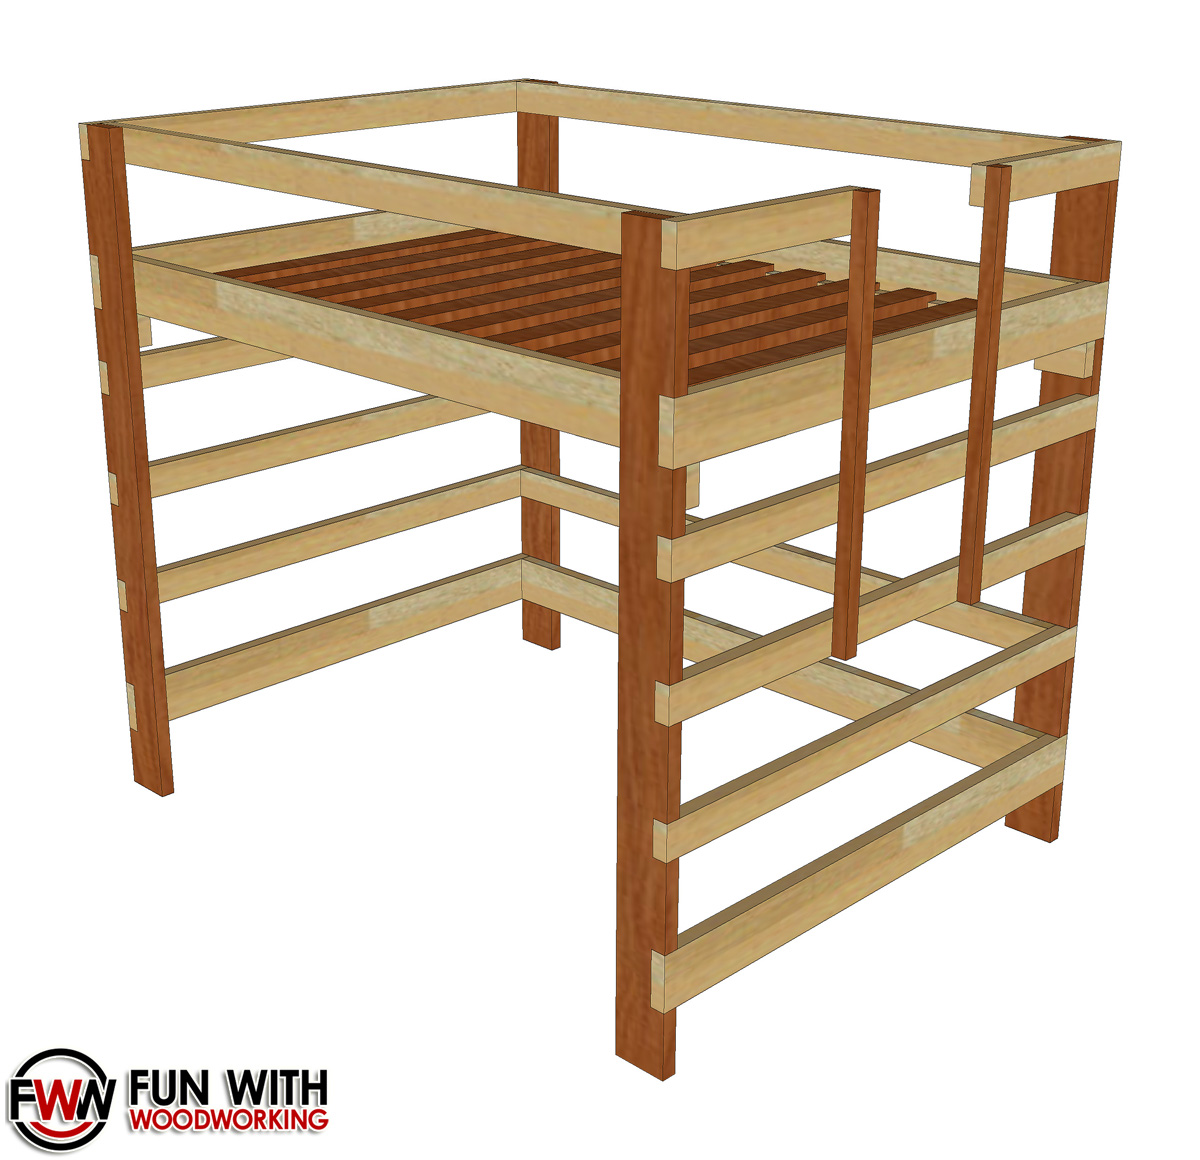 twin size loft bed full plans fun with woodworking. Black Bedroom Furniture Sets. Home Design Ideas